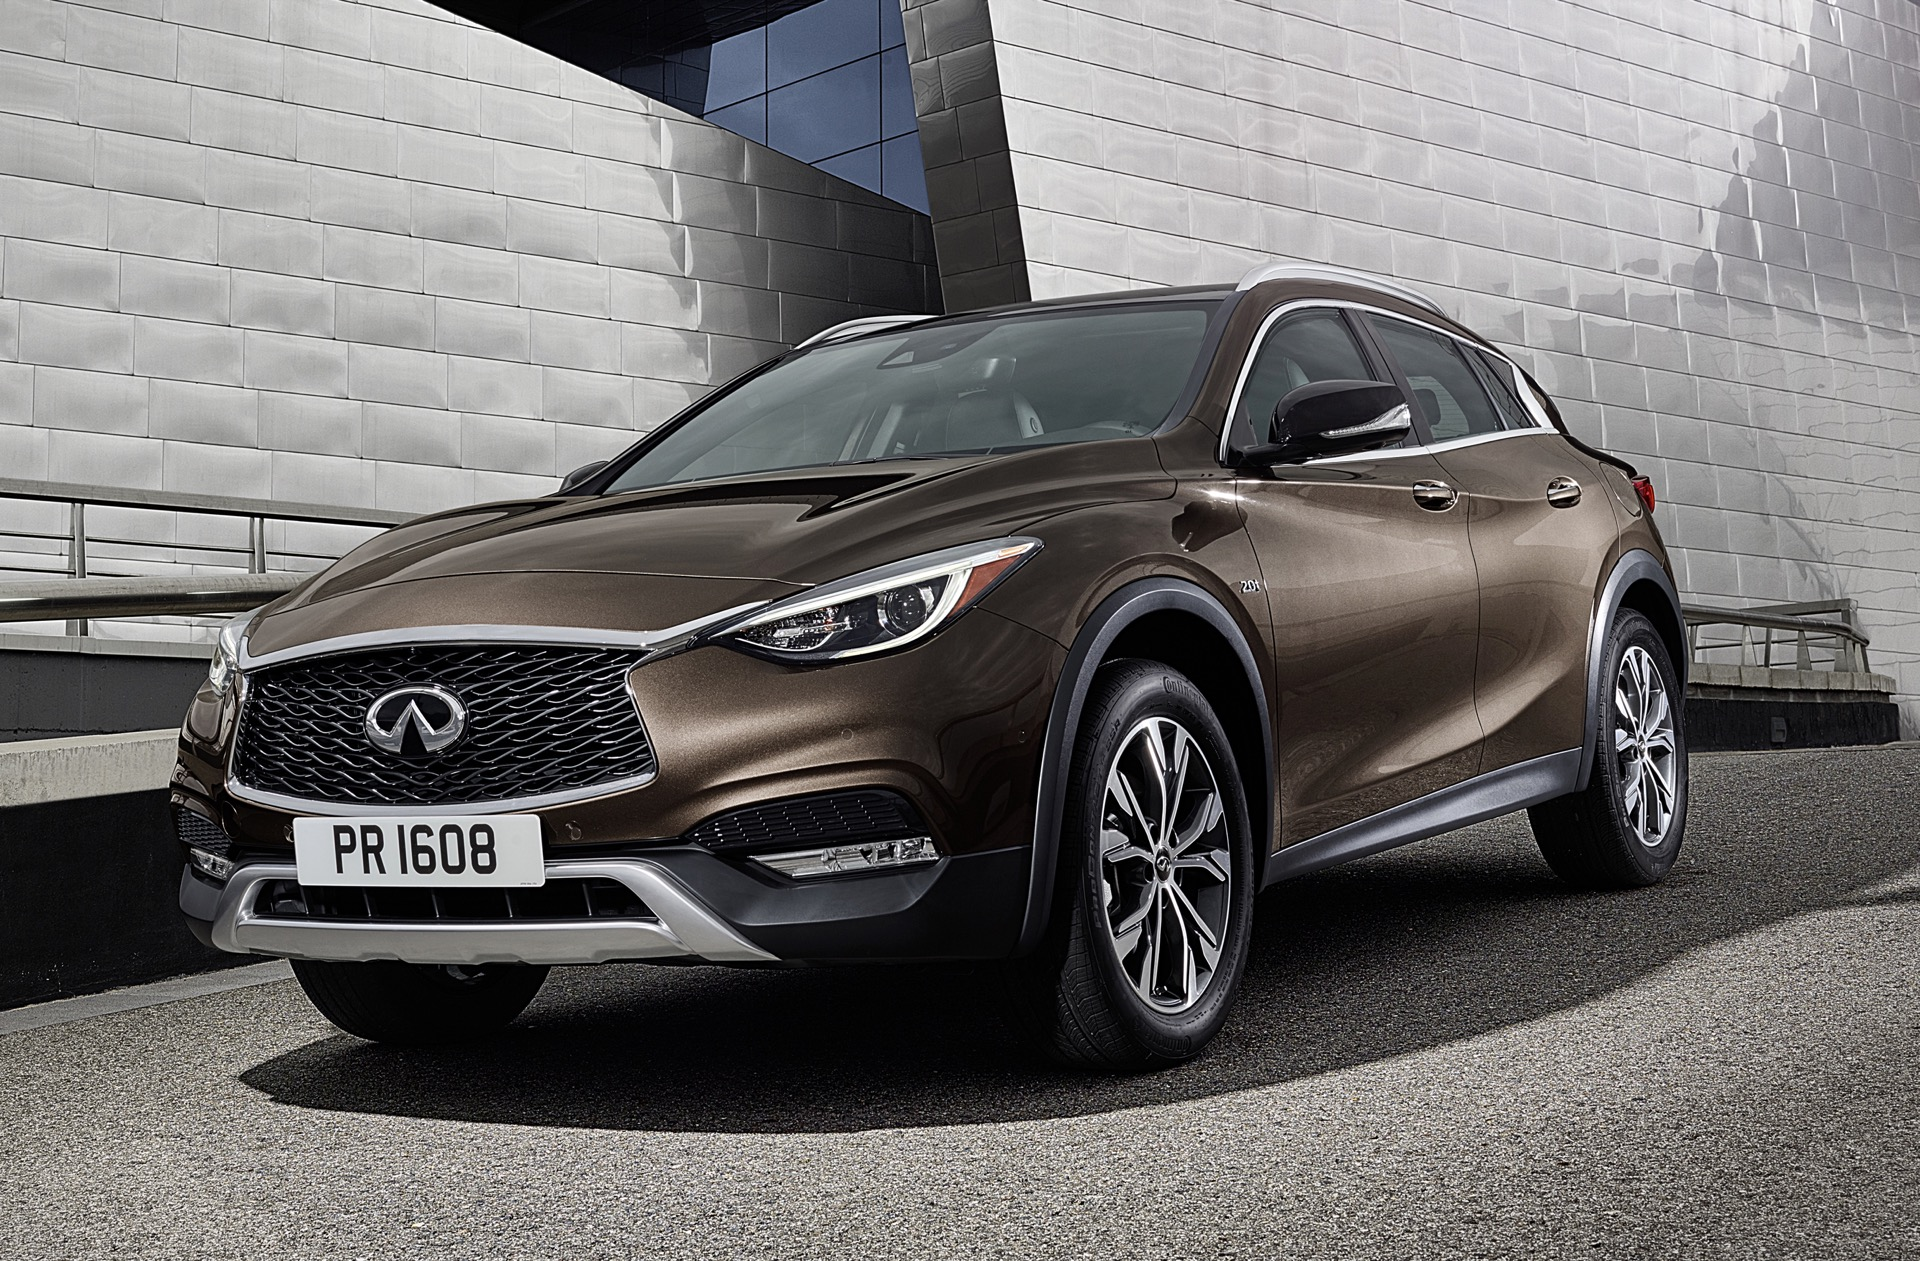 2017 Infiniti QX30 Review, Ratings, Specs, Prices, and Photos - The Car Connection